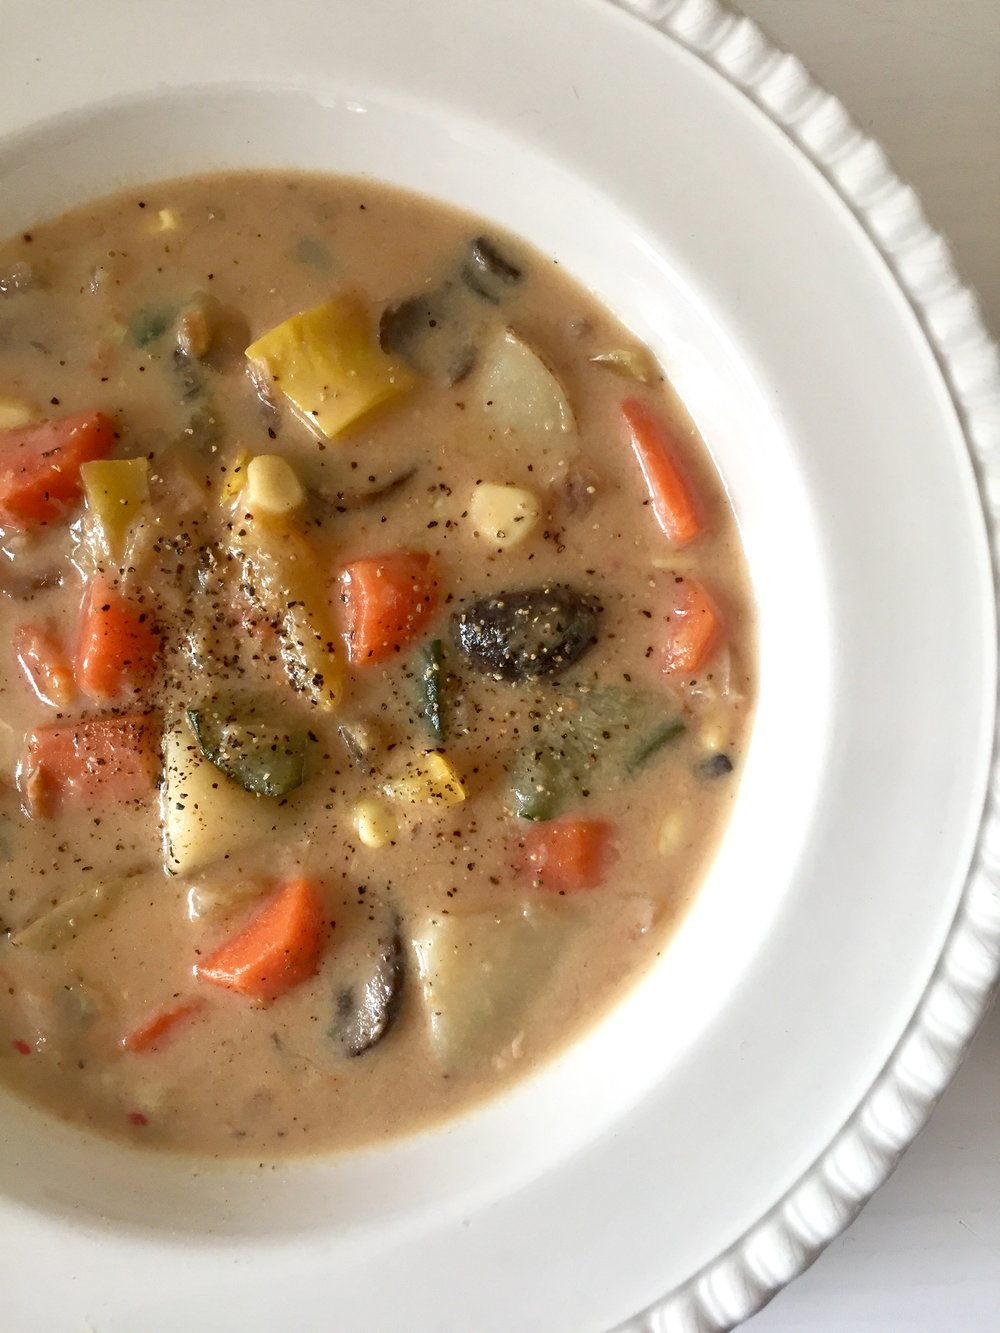 Hygge-inspired Lightened up Creamy Mushroom Vegetable Soup. Image The Entertaining House